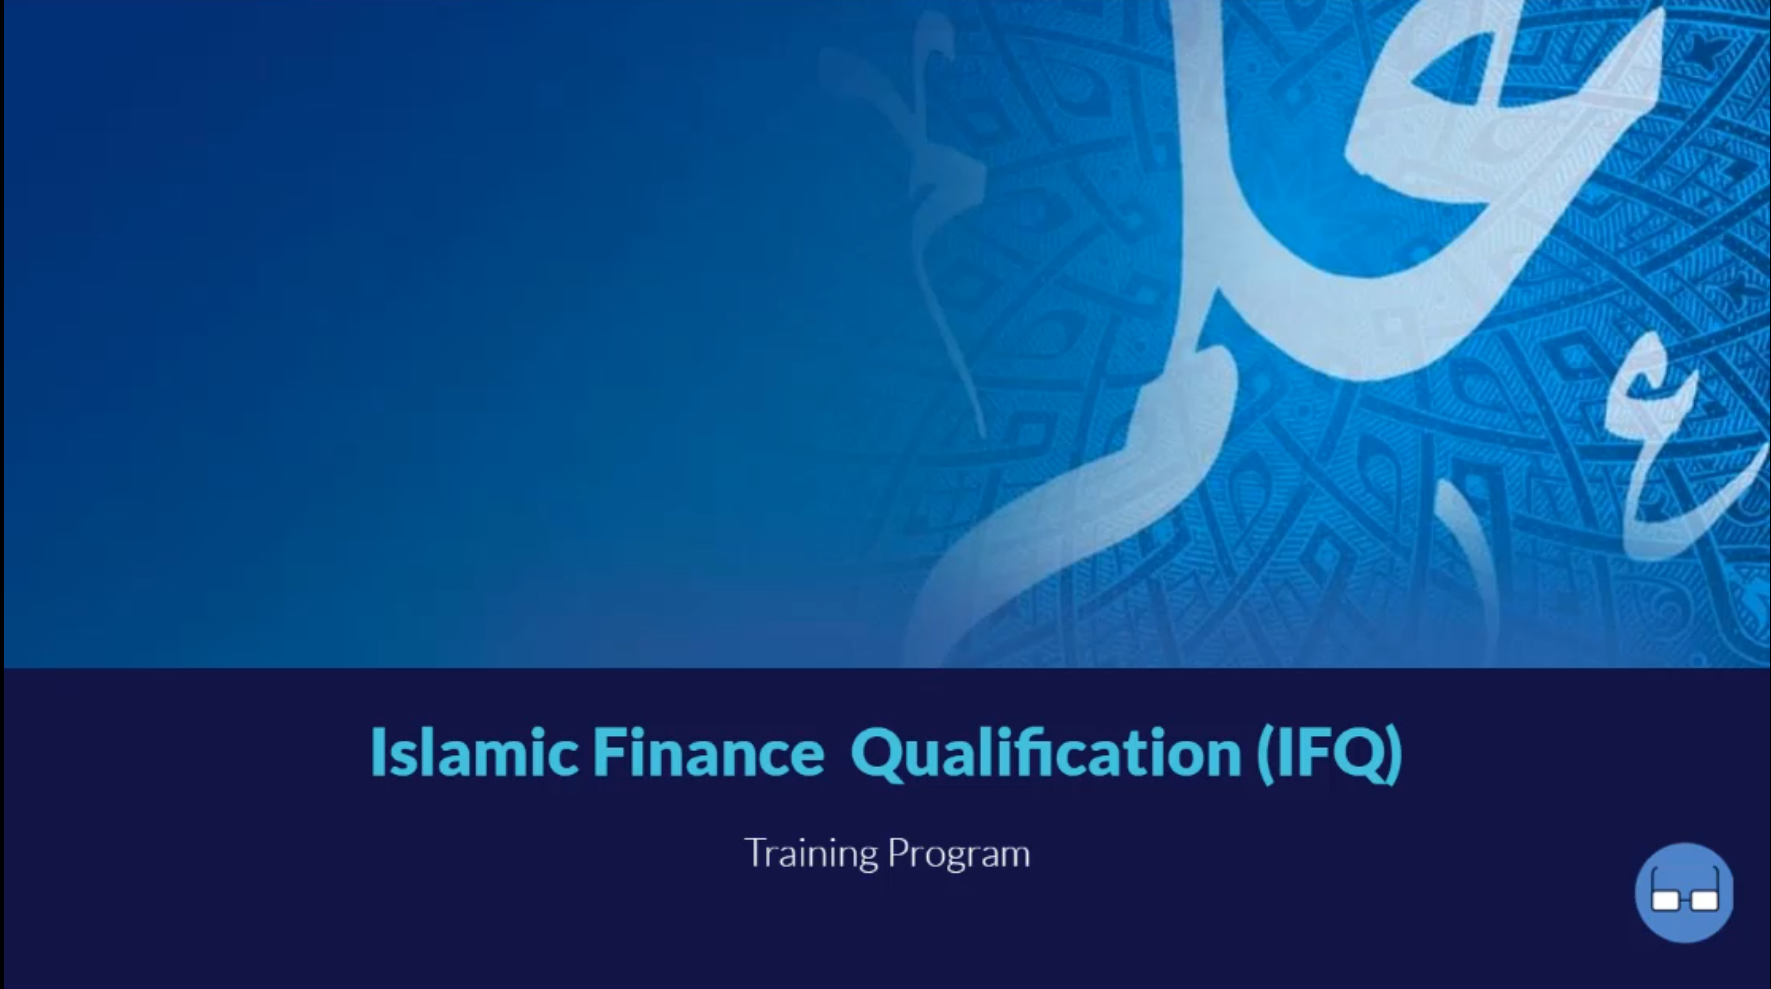 Islamic Finance Qualification (IFQ) eLearning Course